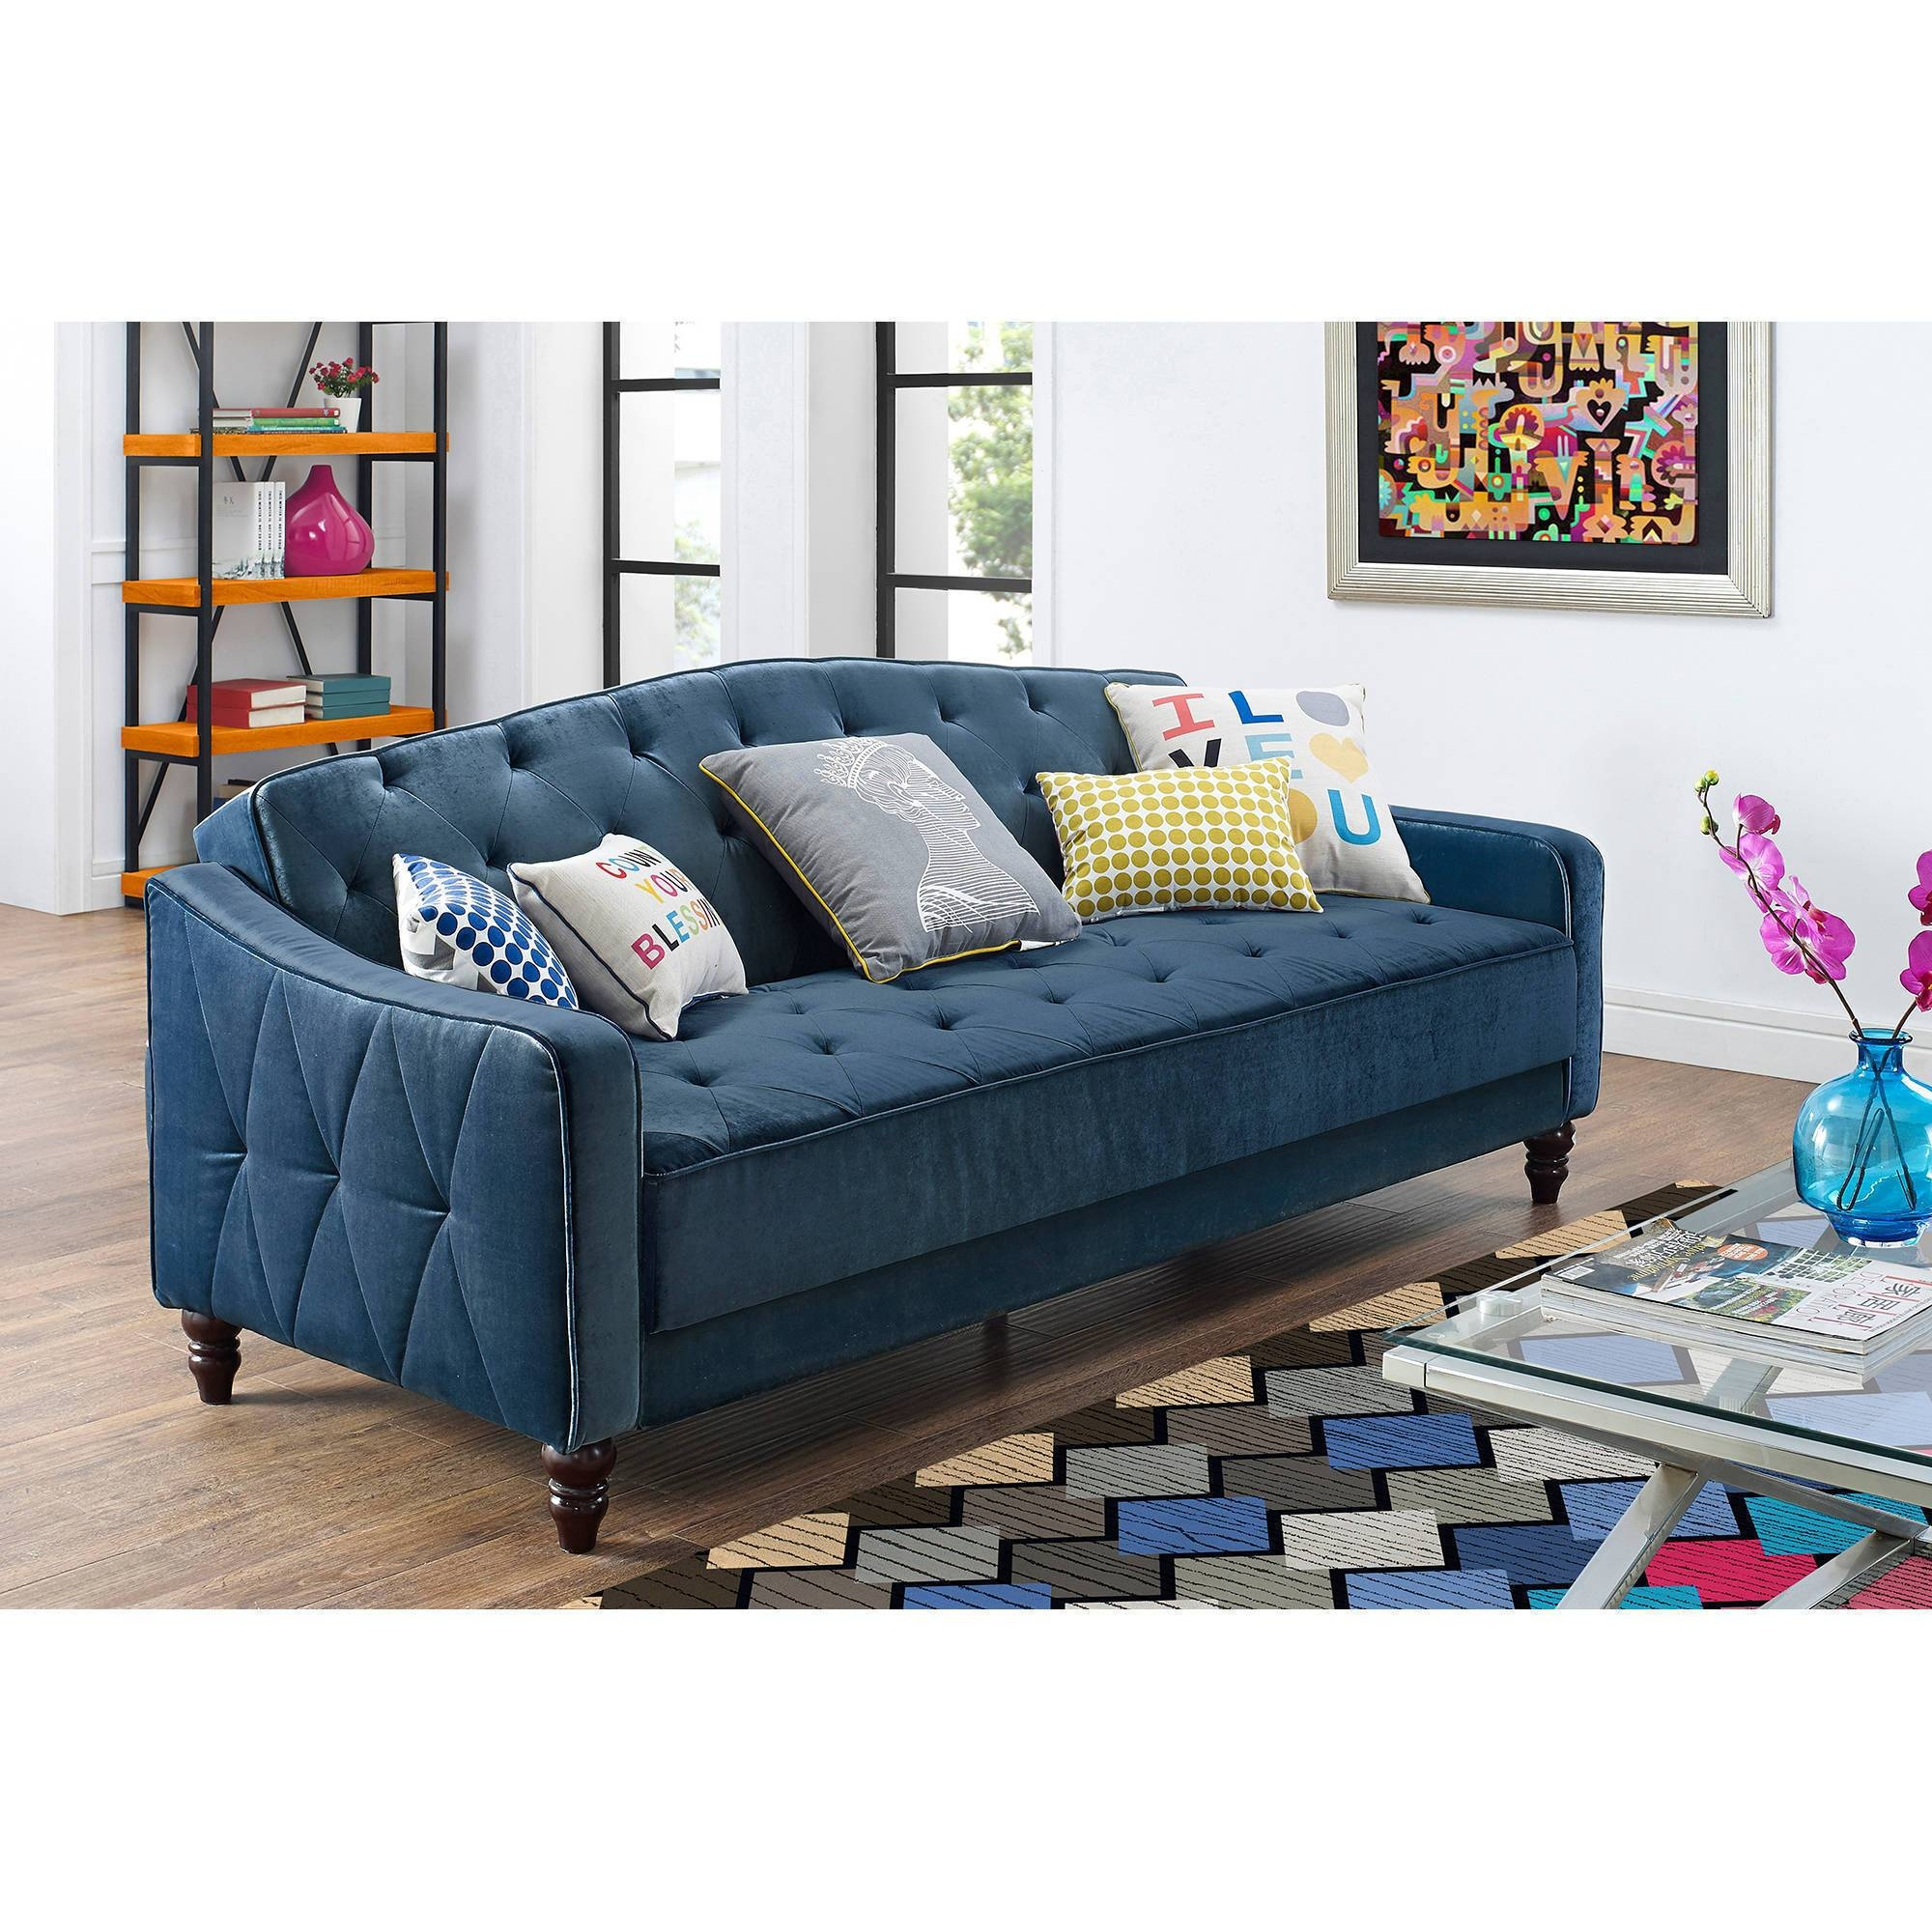 Futons, Futon Beds, Sofa Beds - Walmart for Red Sleeper Sofa (Image 11 of 30)